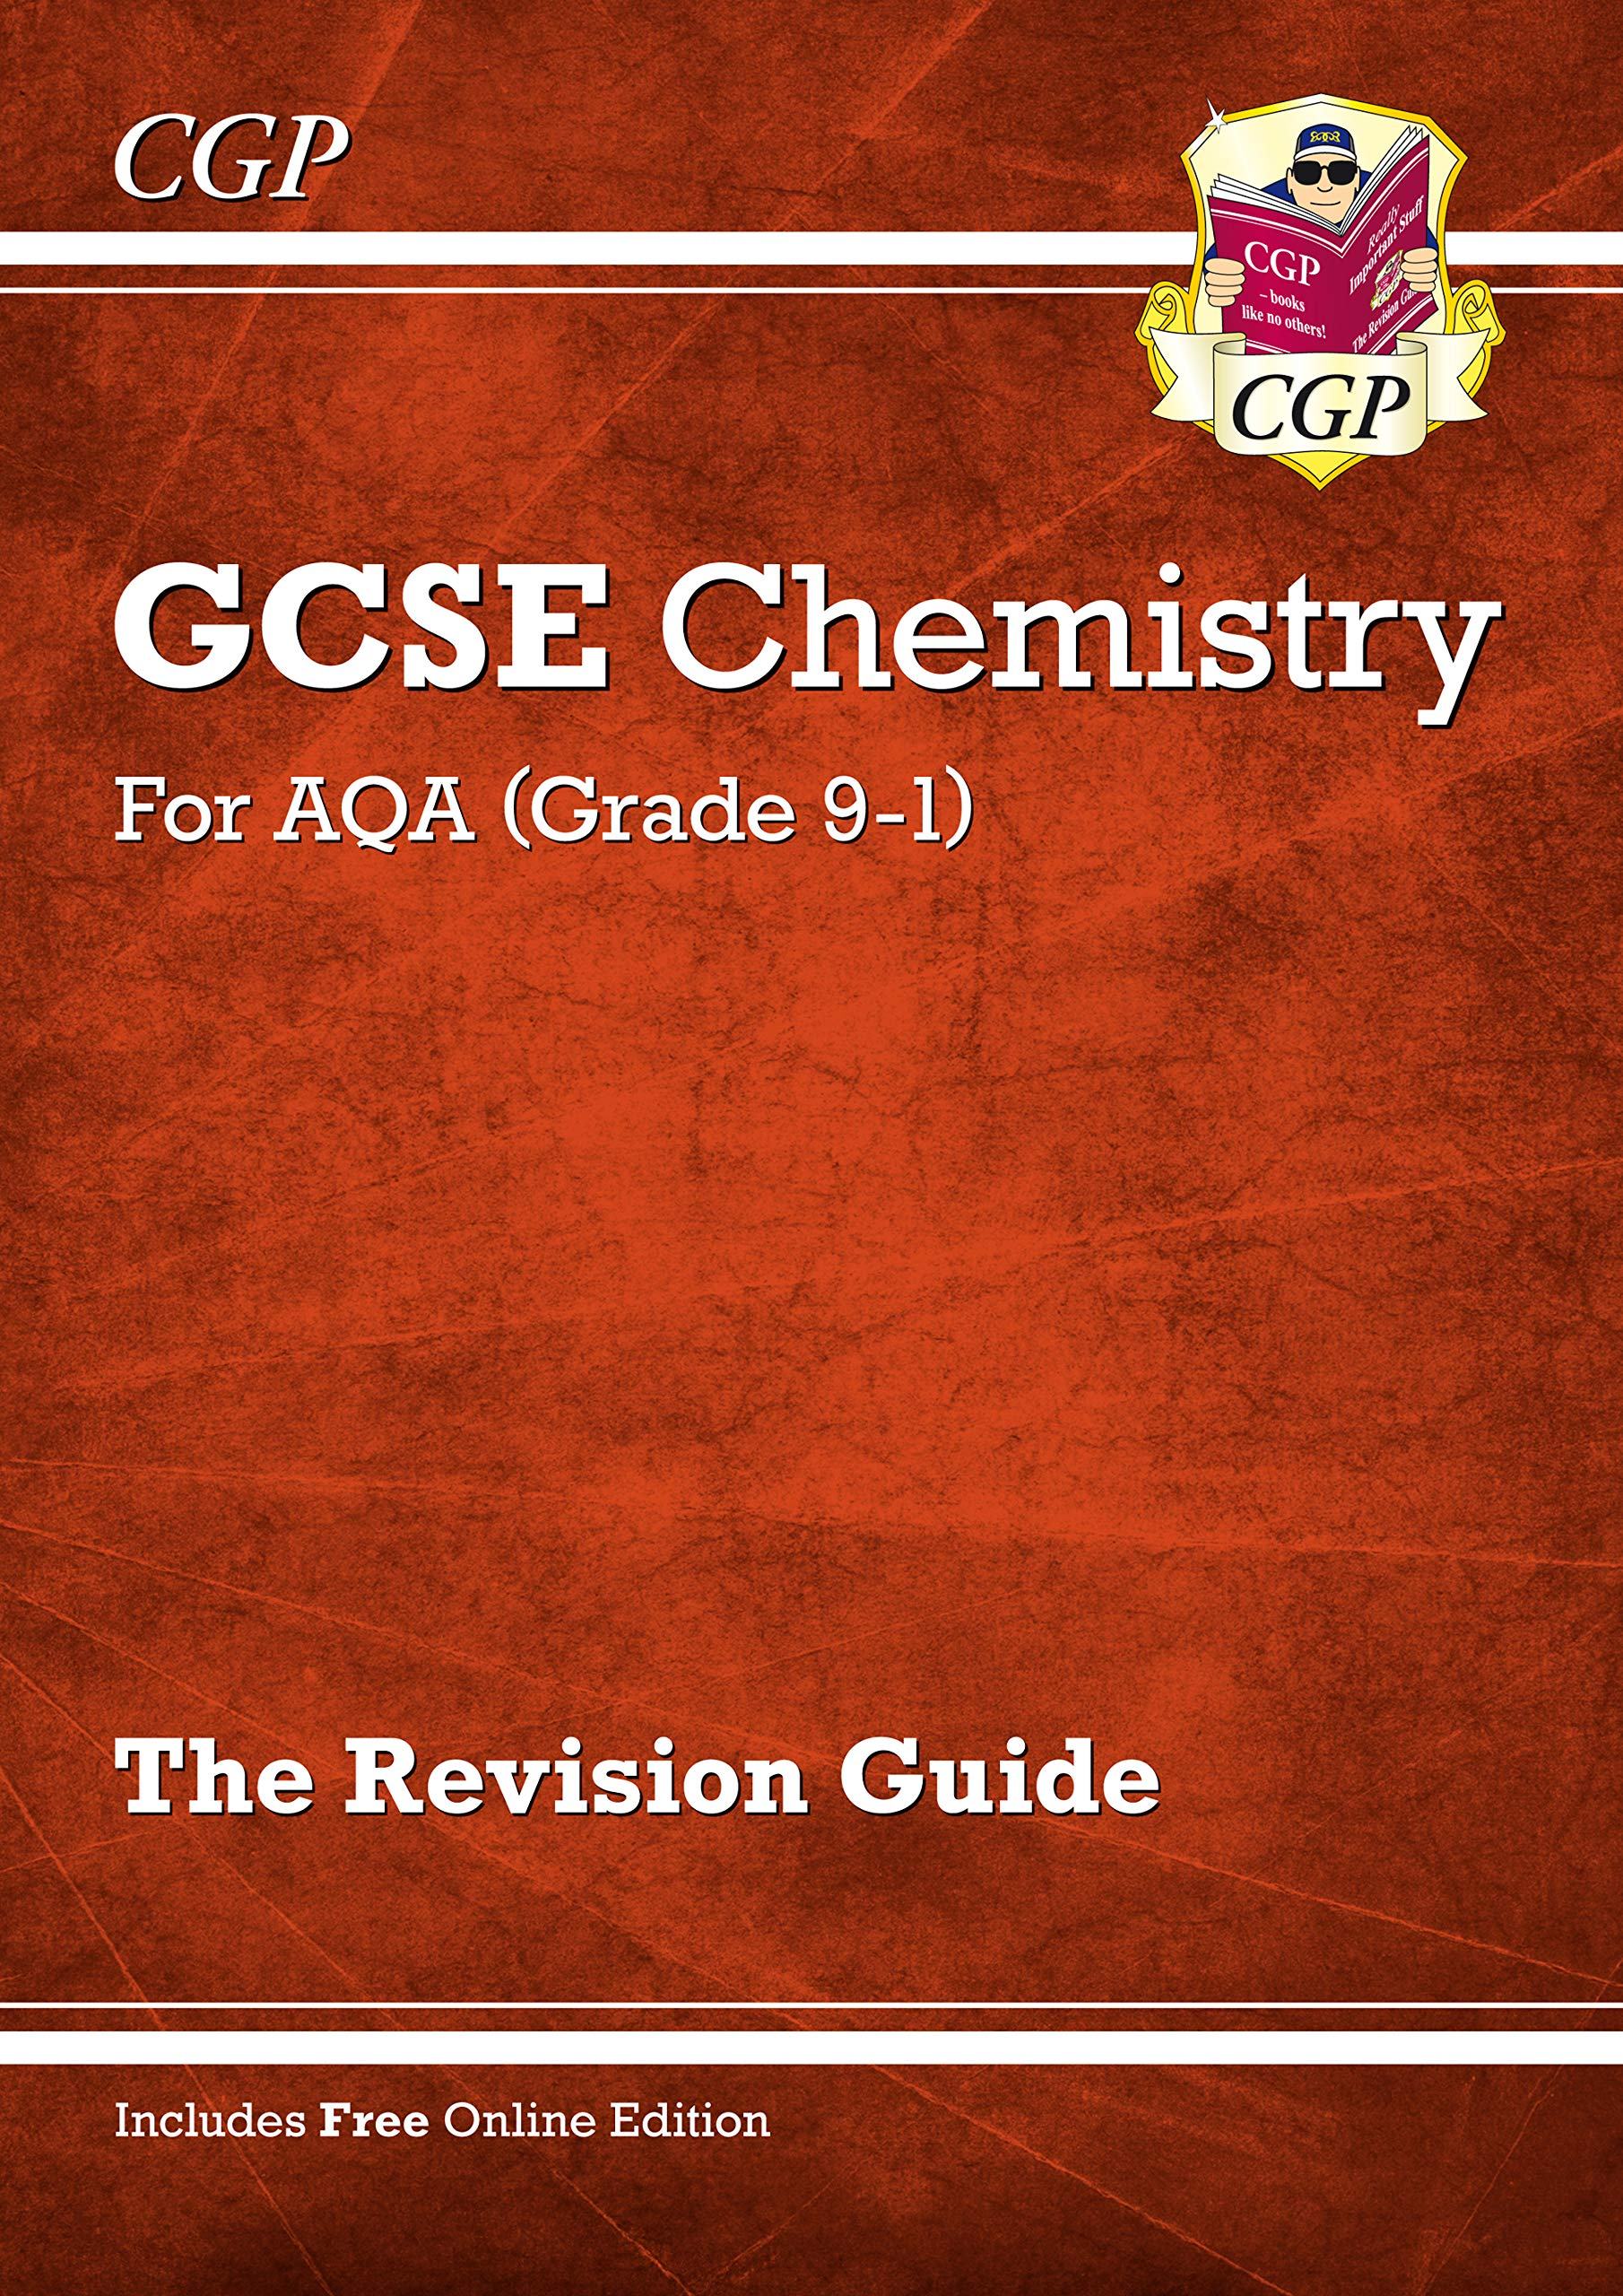 Morrisons: cgp gcse chemistry aqa revision guide (product information).